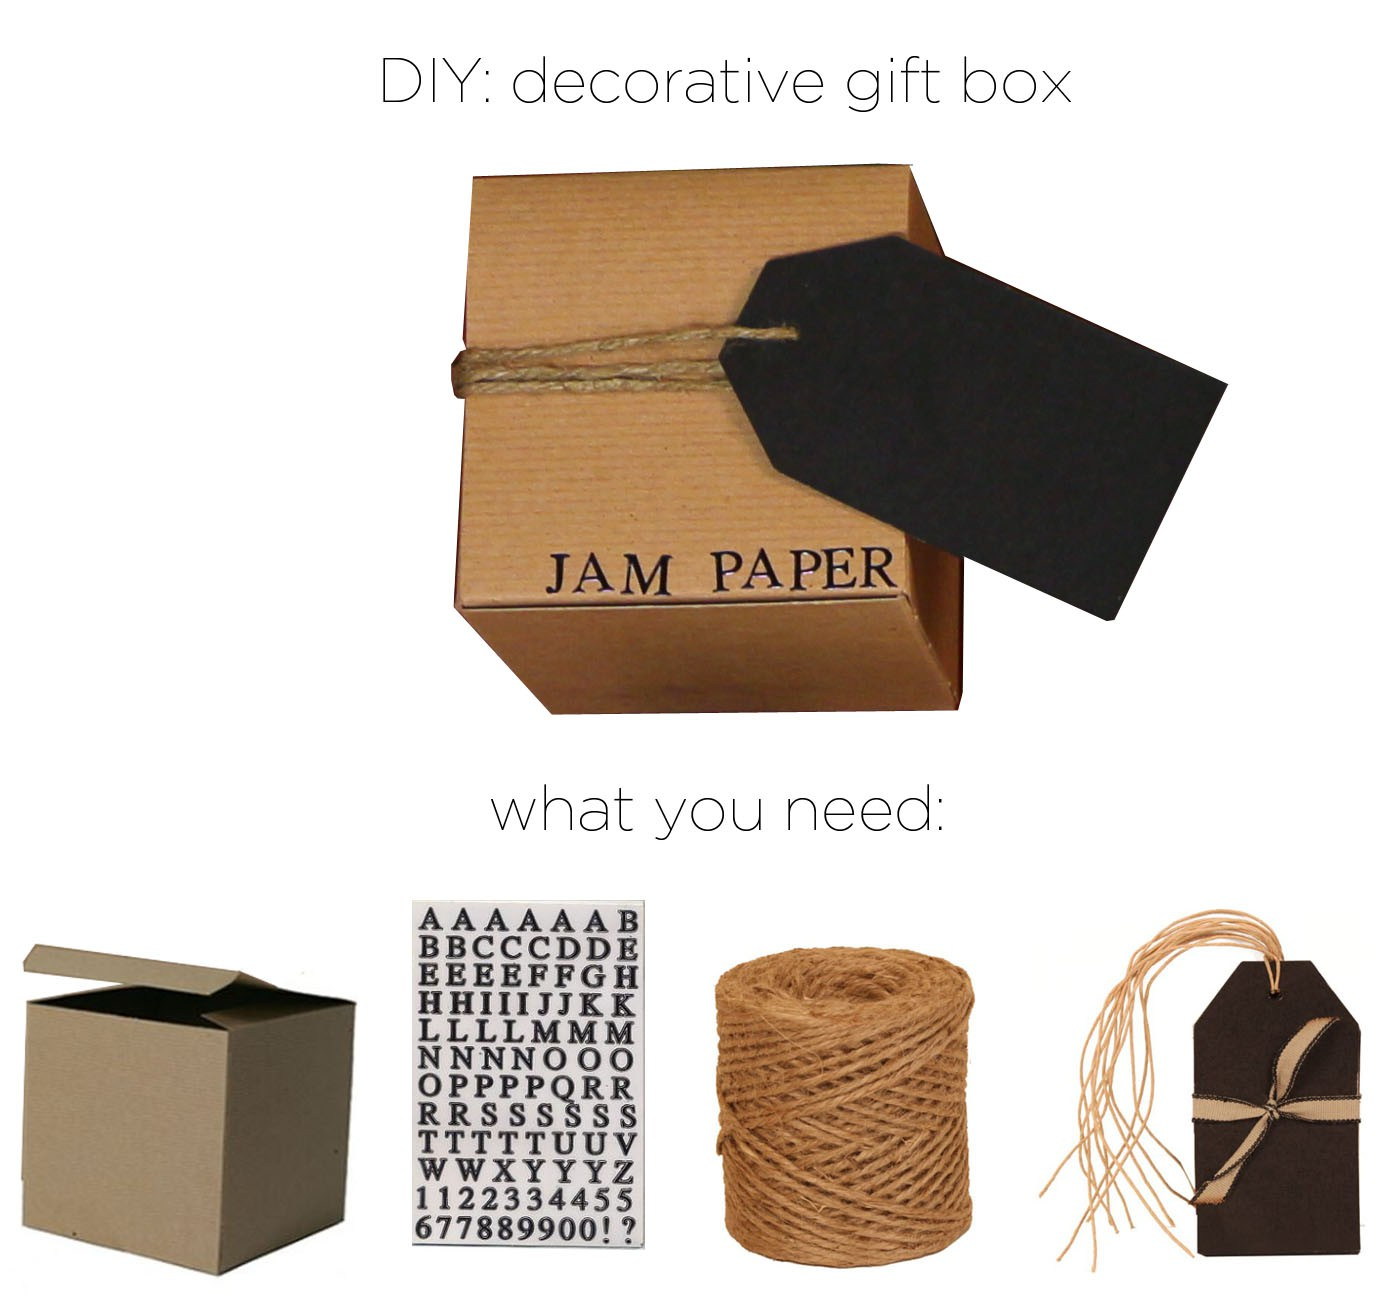 DIY Decorative Gift Box